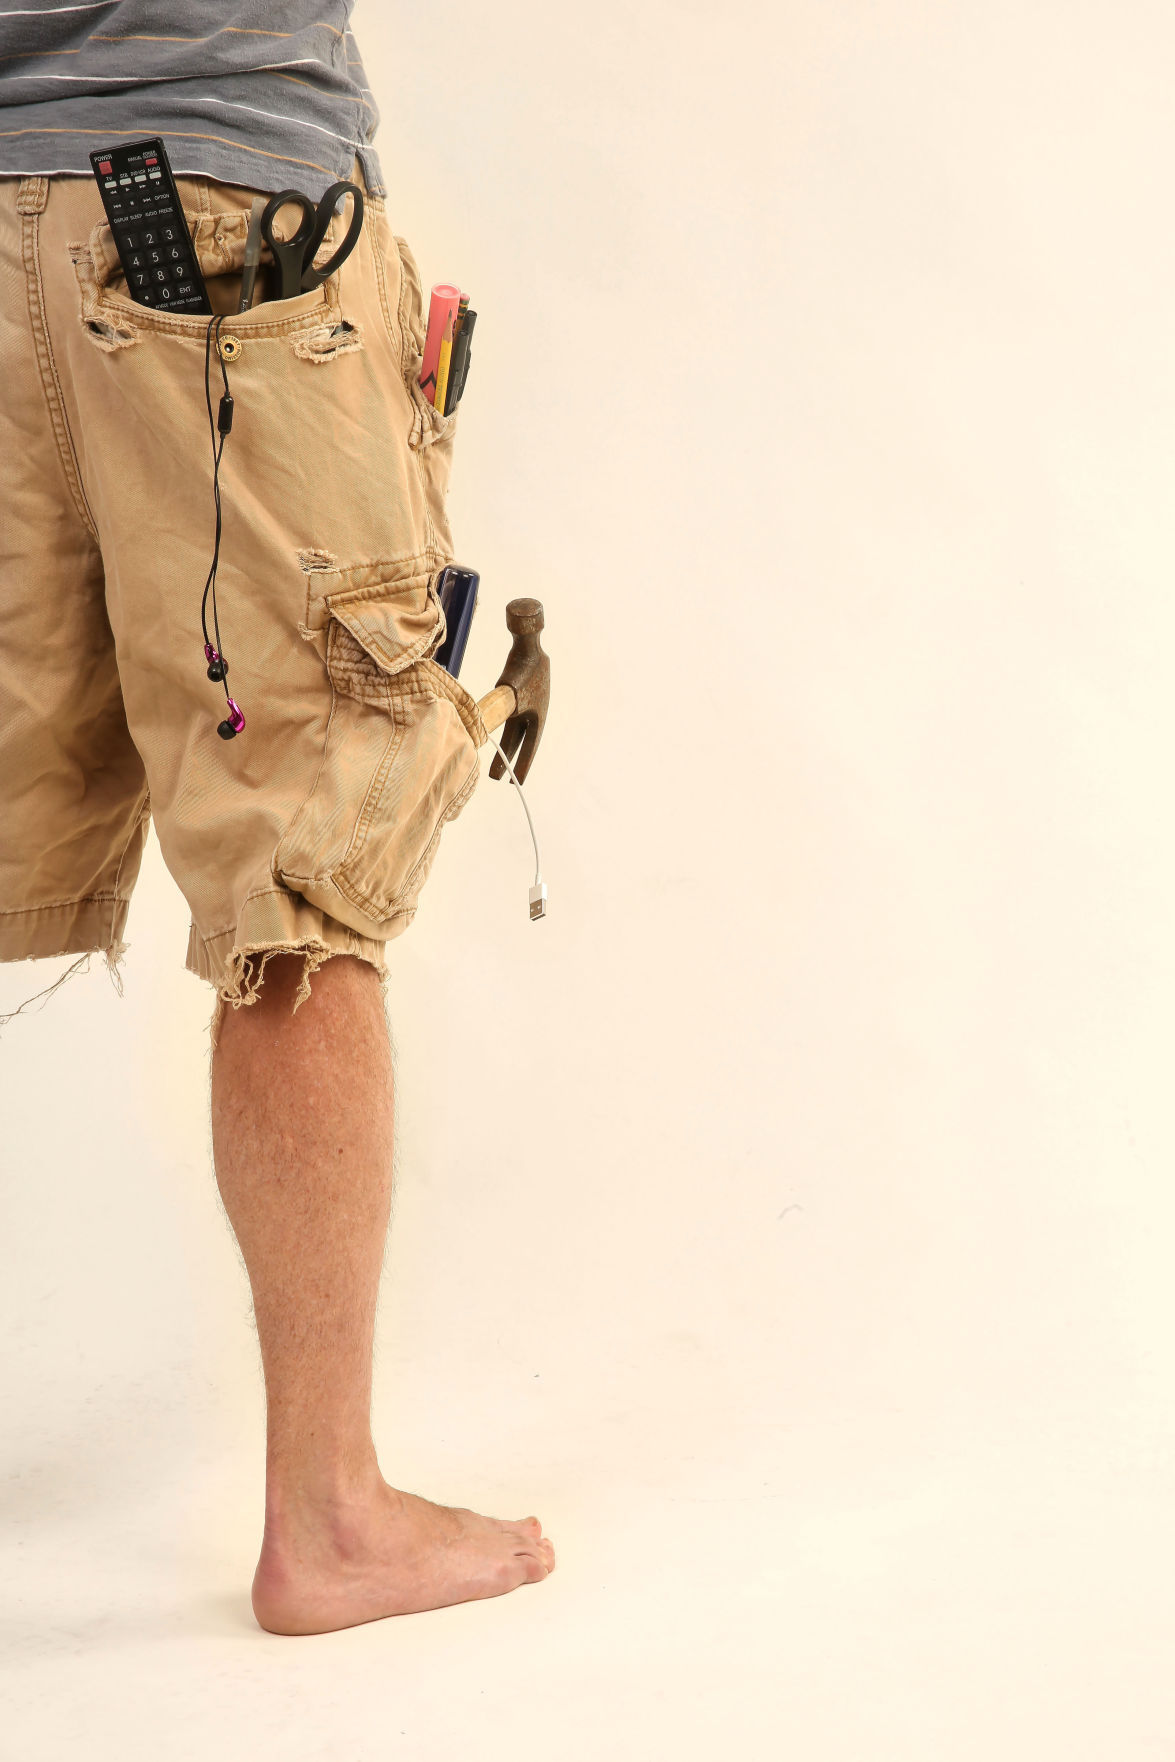 65151c8a26 Maligned cargo shorts are now a relationship issue | South Jersey ...